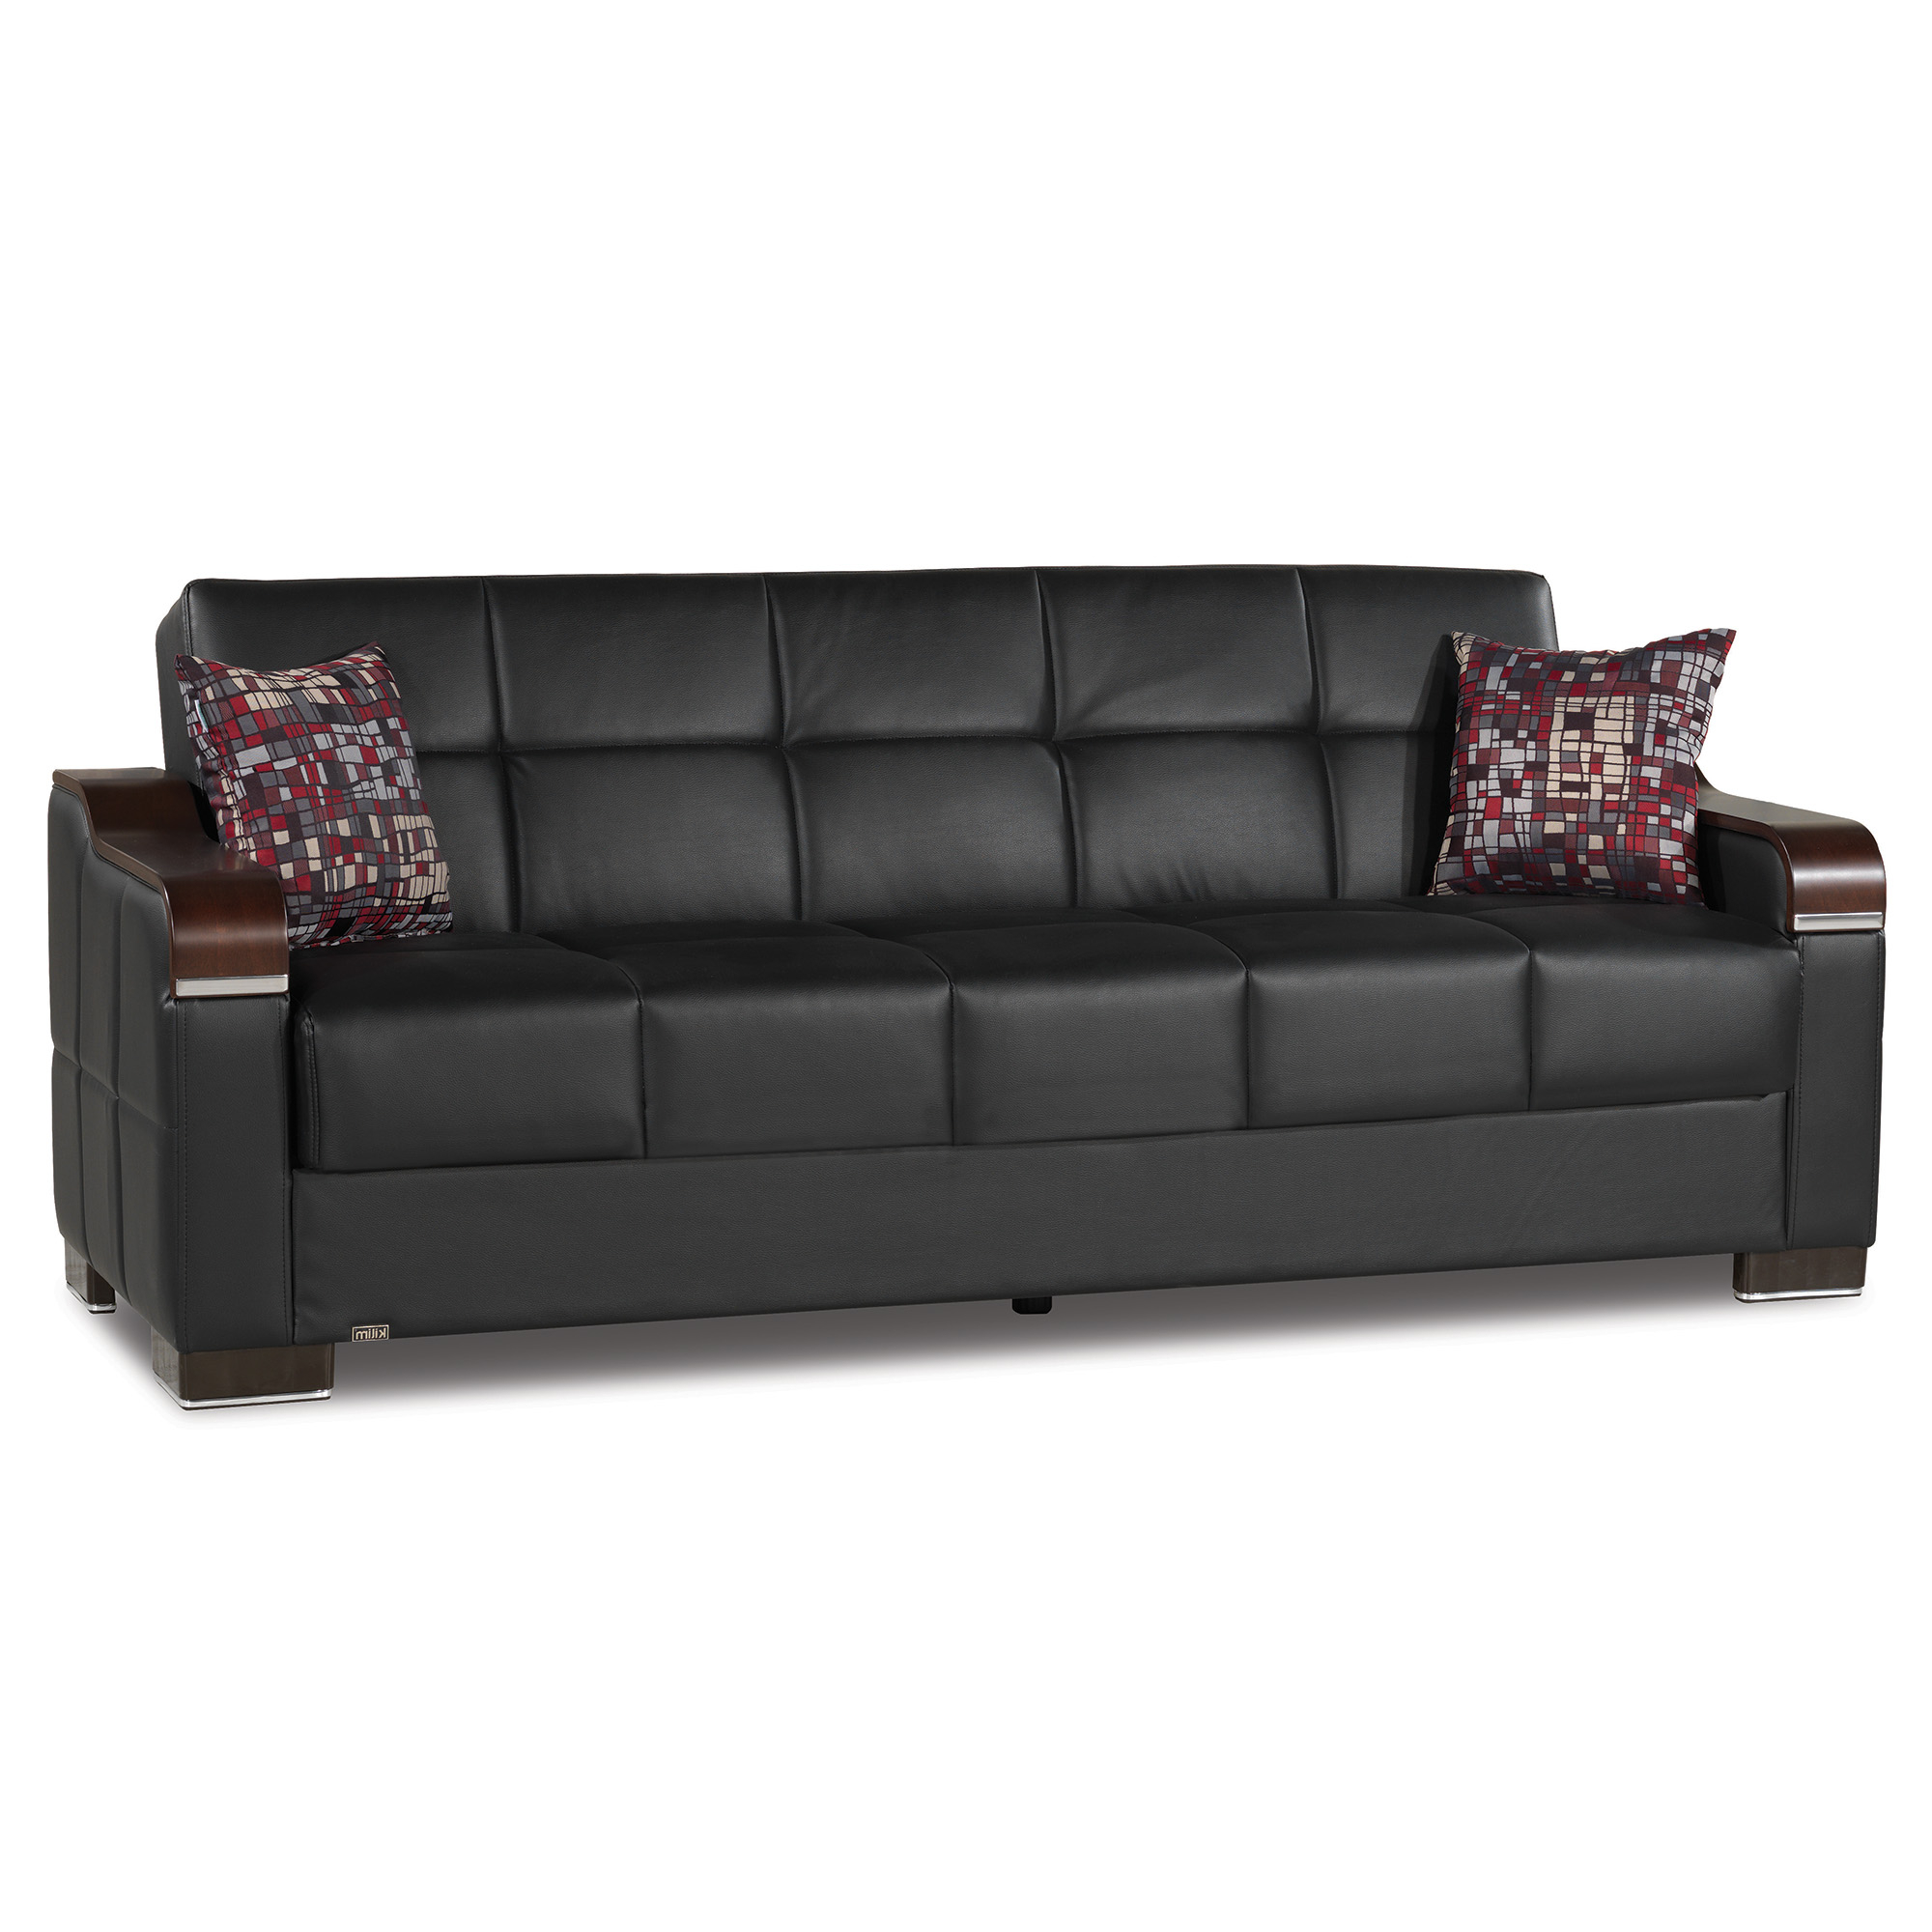 Latest Hartford Storage Sectional Futon Sofas With Regard To Uptown Leather Wooden Accent Arm Sleeper Sofa Bed With (View 2 of 25)